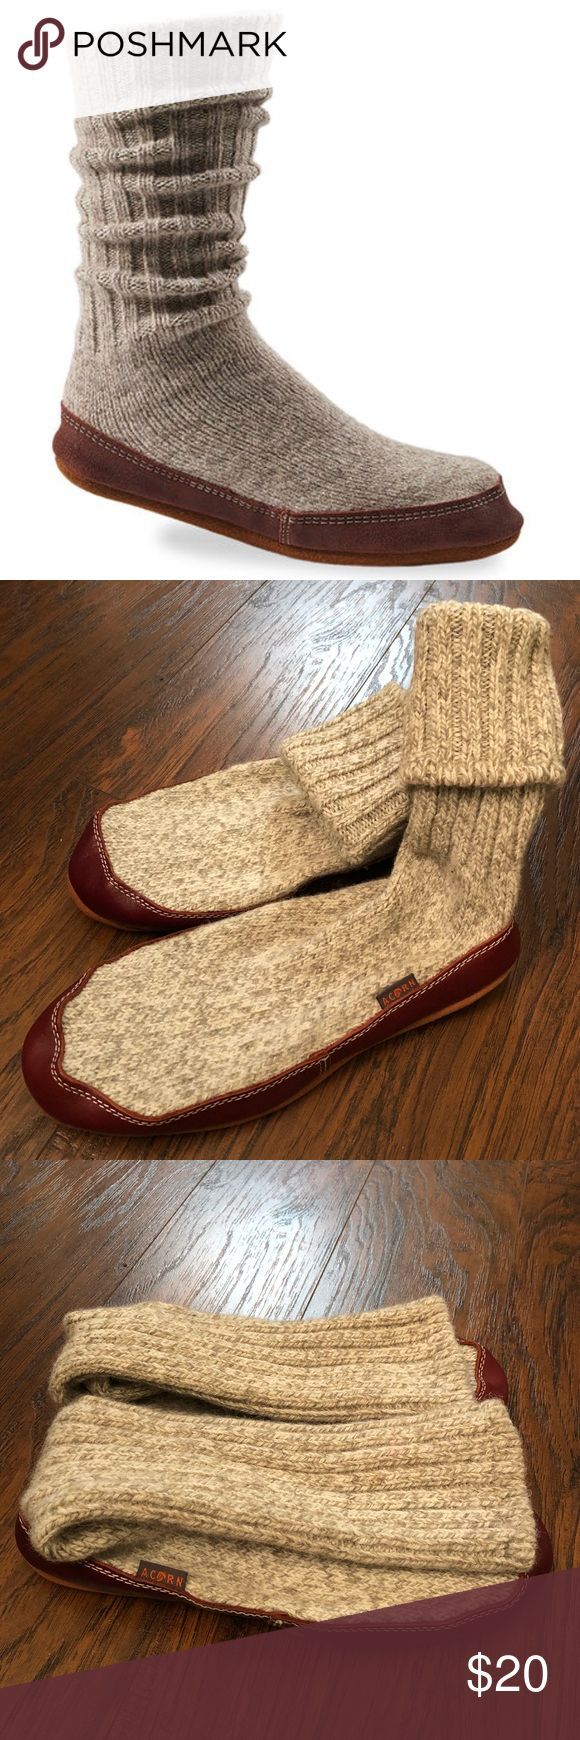 Acorn Original Slipper Sock 71/2-81/2 NWOT These are NWOT. The Original Slipper Sock--over 40 years and still going strong. Astronauts have worn them on shuttle missions and aboard the International Space Station! they're perfect for downtime on a frosty weekend, or just lounging around the pad all year long. in ragg wool, Cotton Twist Style is 97% cotton, 3% spandex Premium, multilayer Cloud Cushion™ footbed Durable leather sidewall repels stains and water Genuine suede sole Care: Machine…